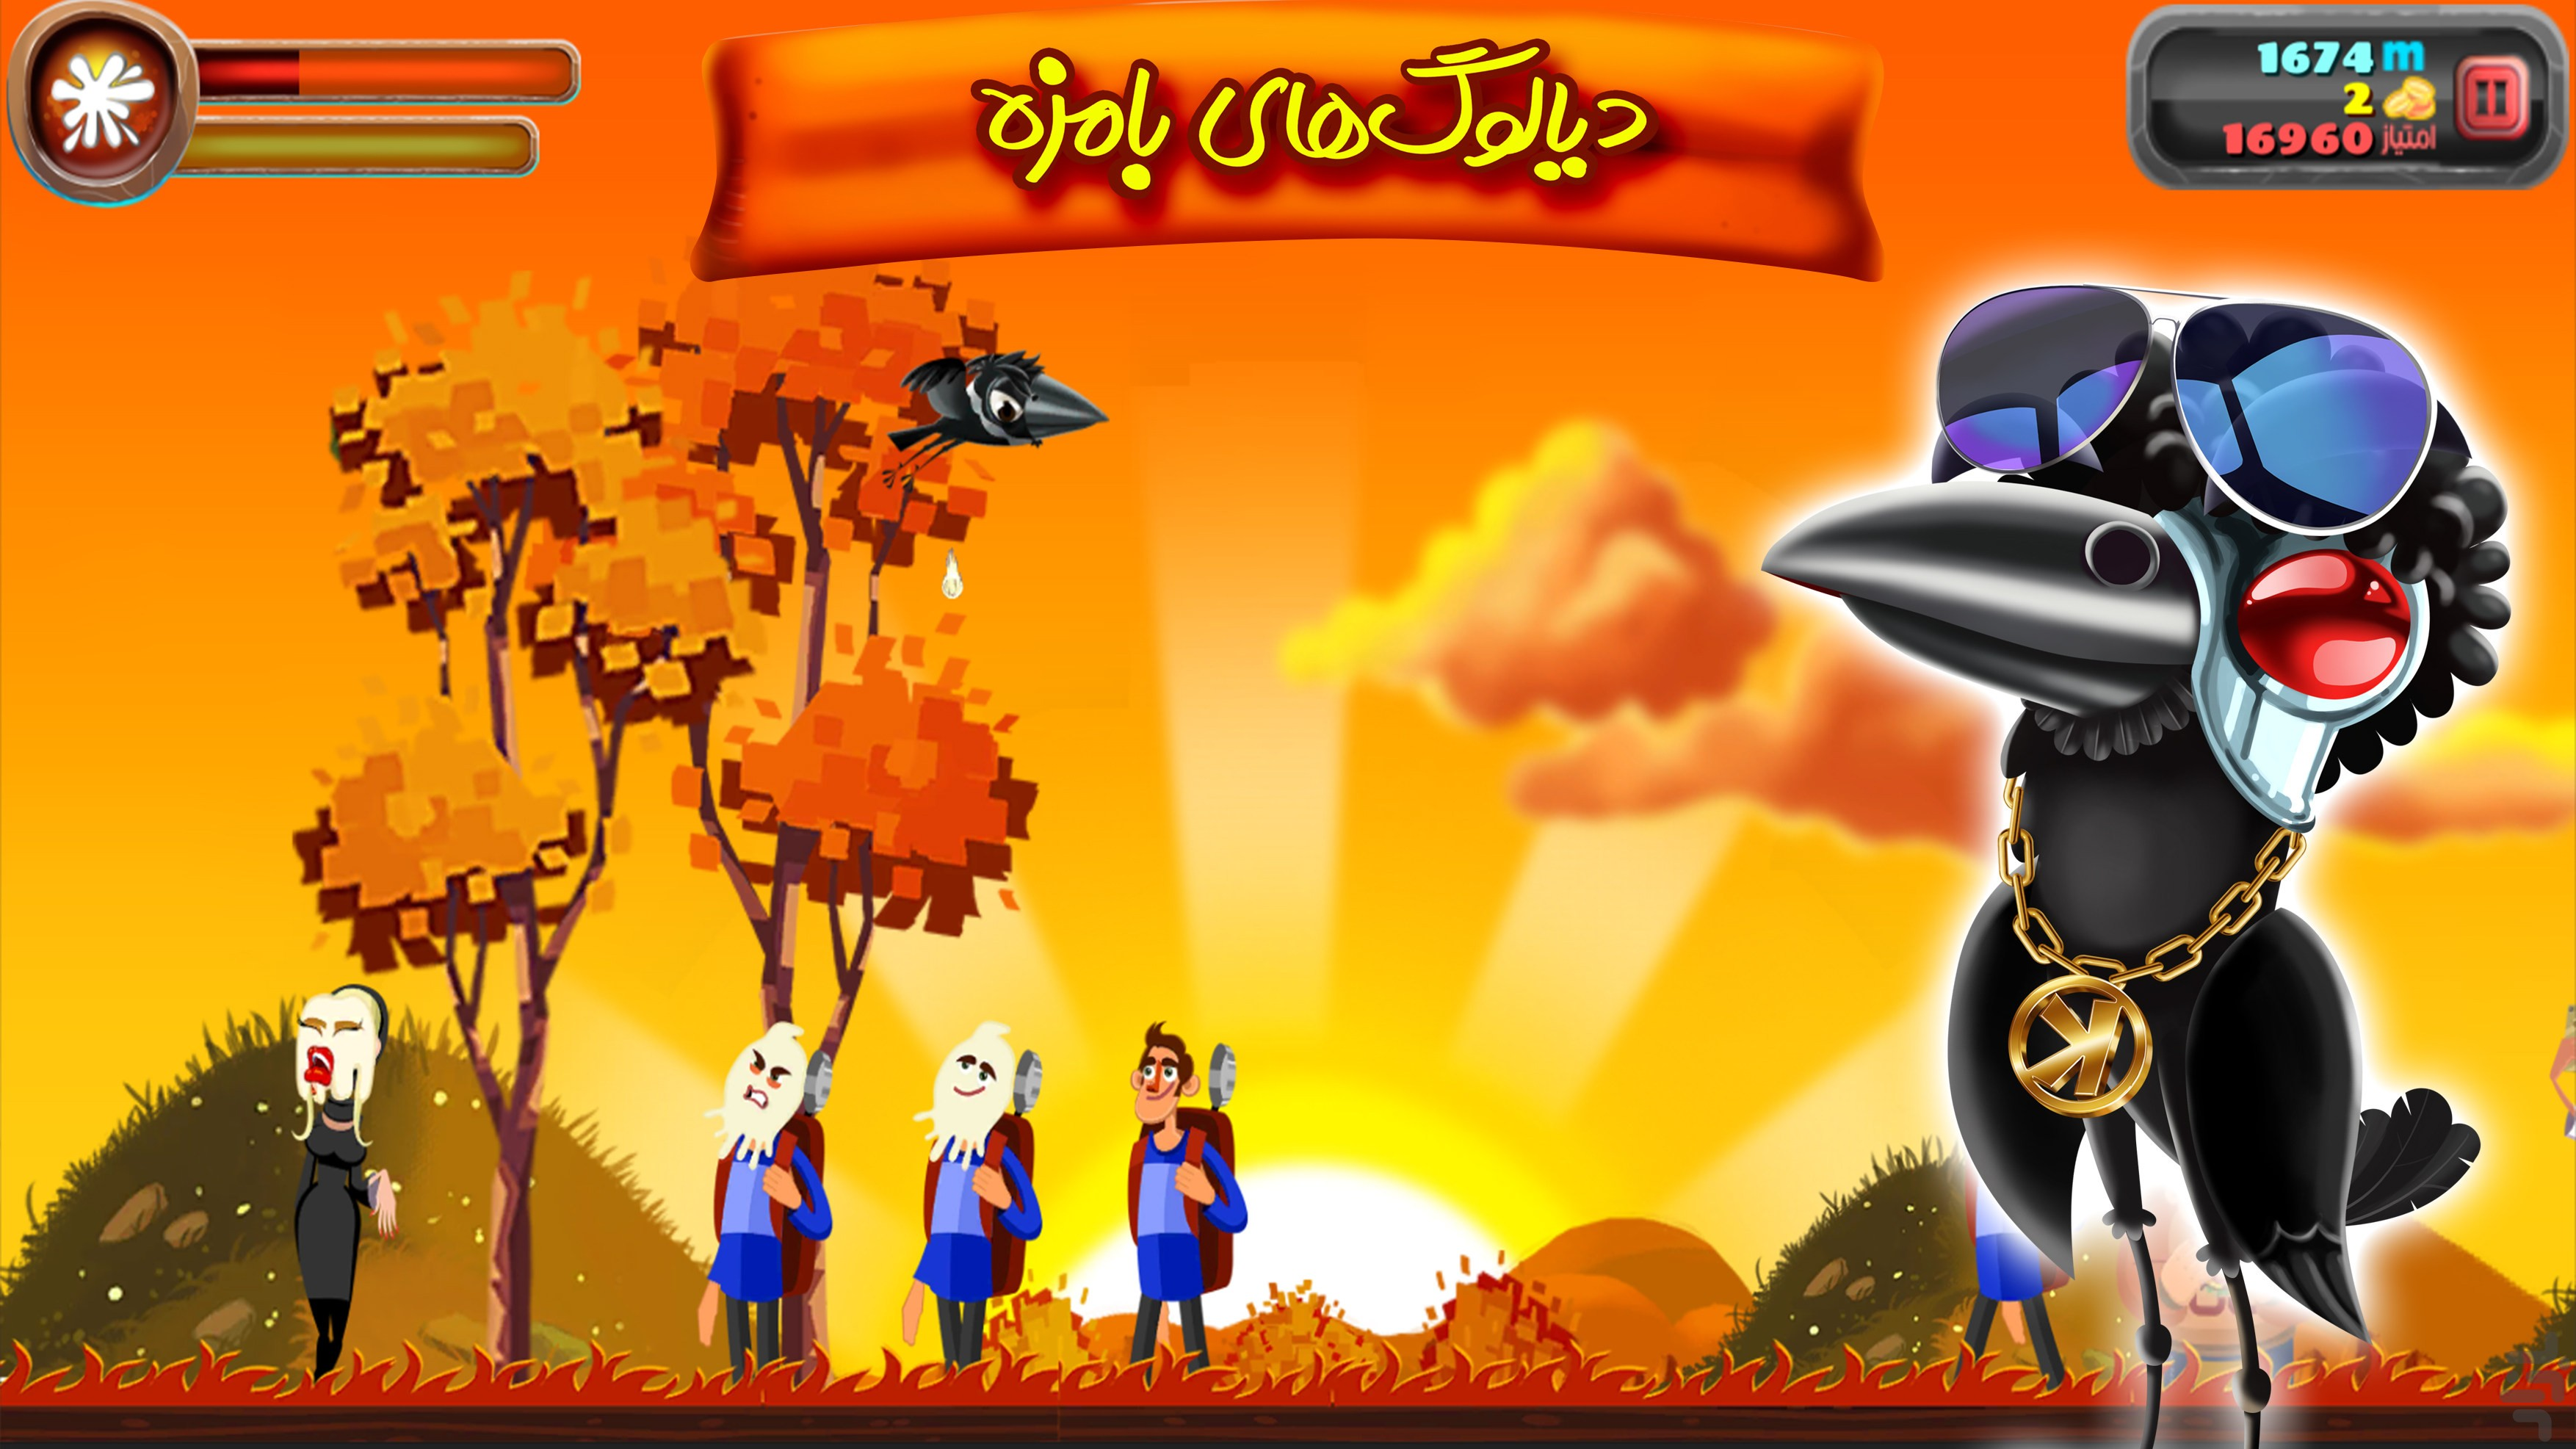 Download the hacked crow crow game